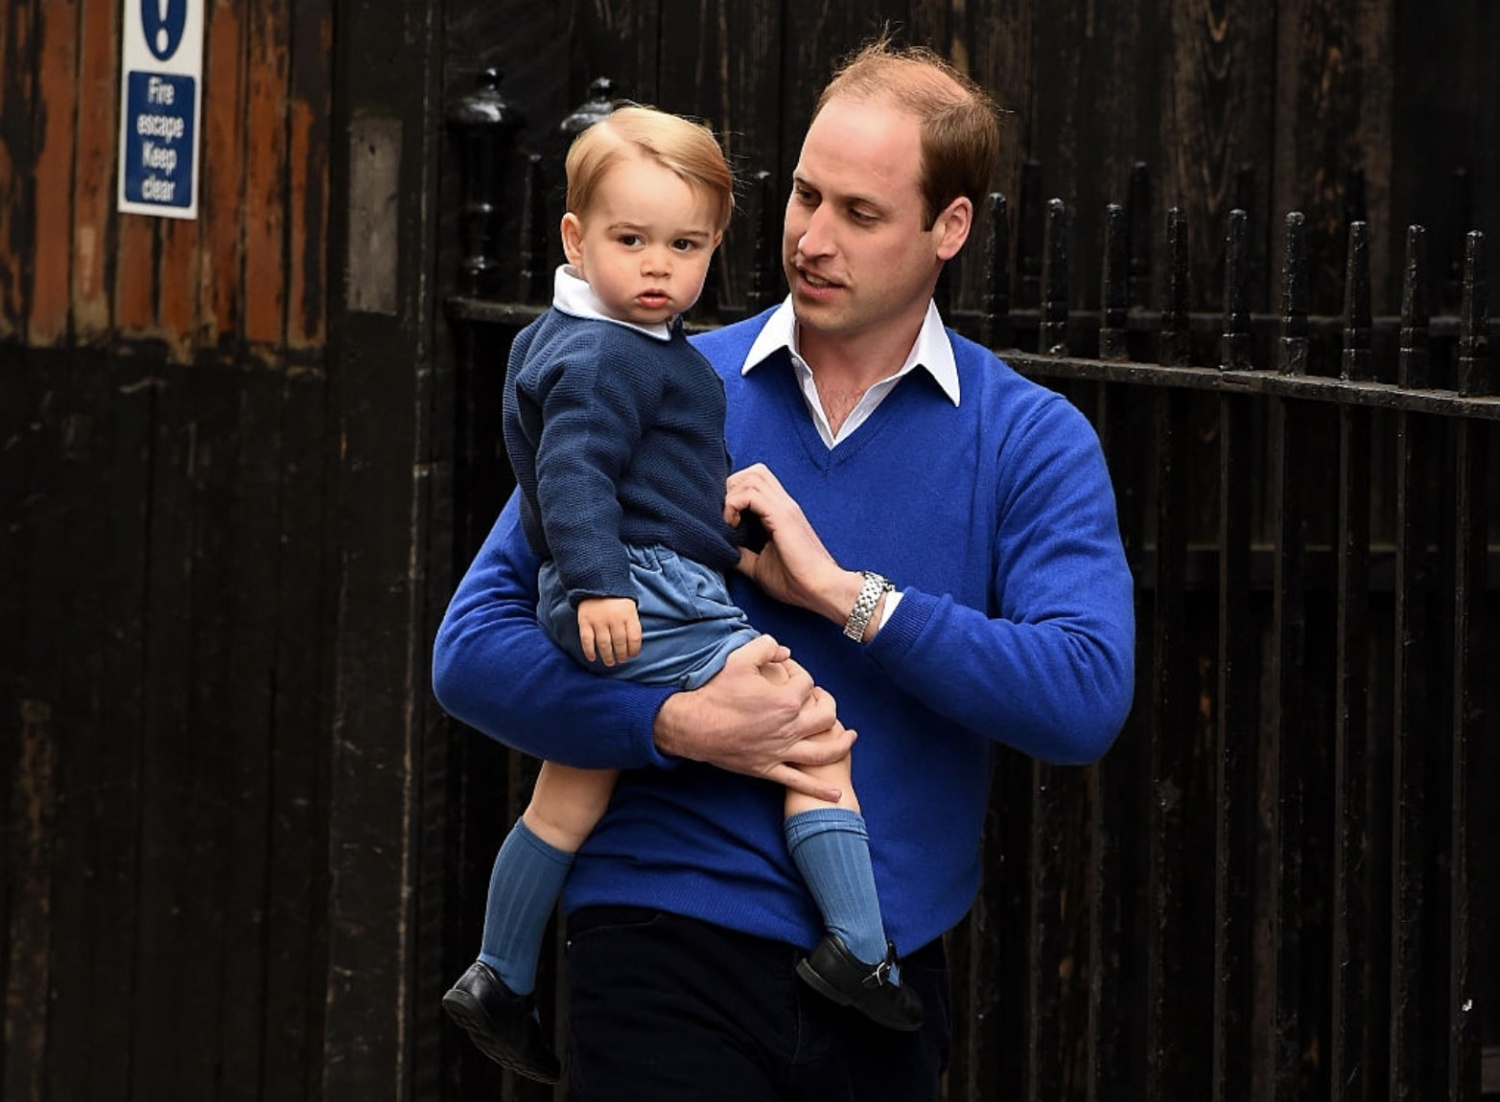 Prince George To 'Break Royal Traditions' After Prince William And Kate Look For Houses